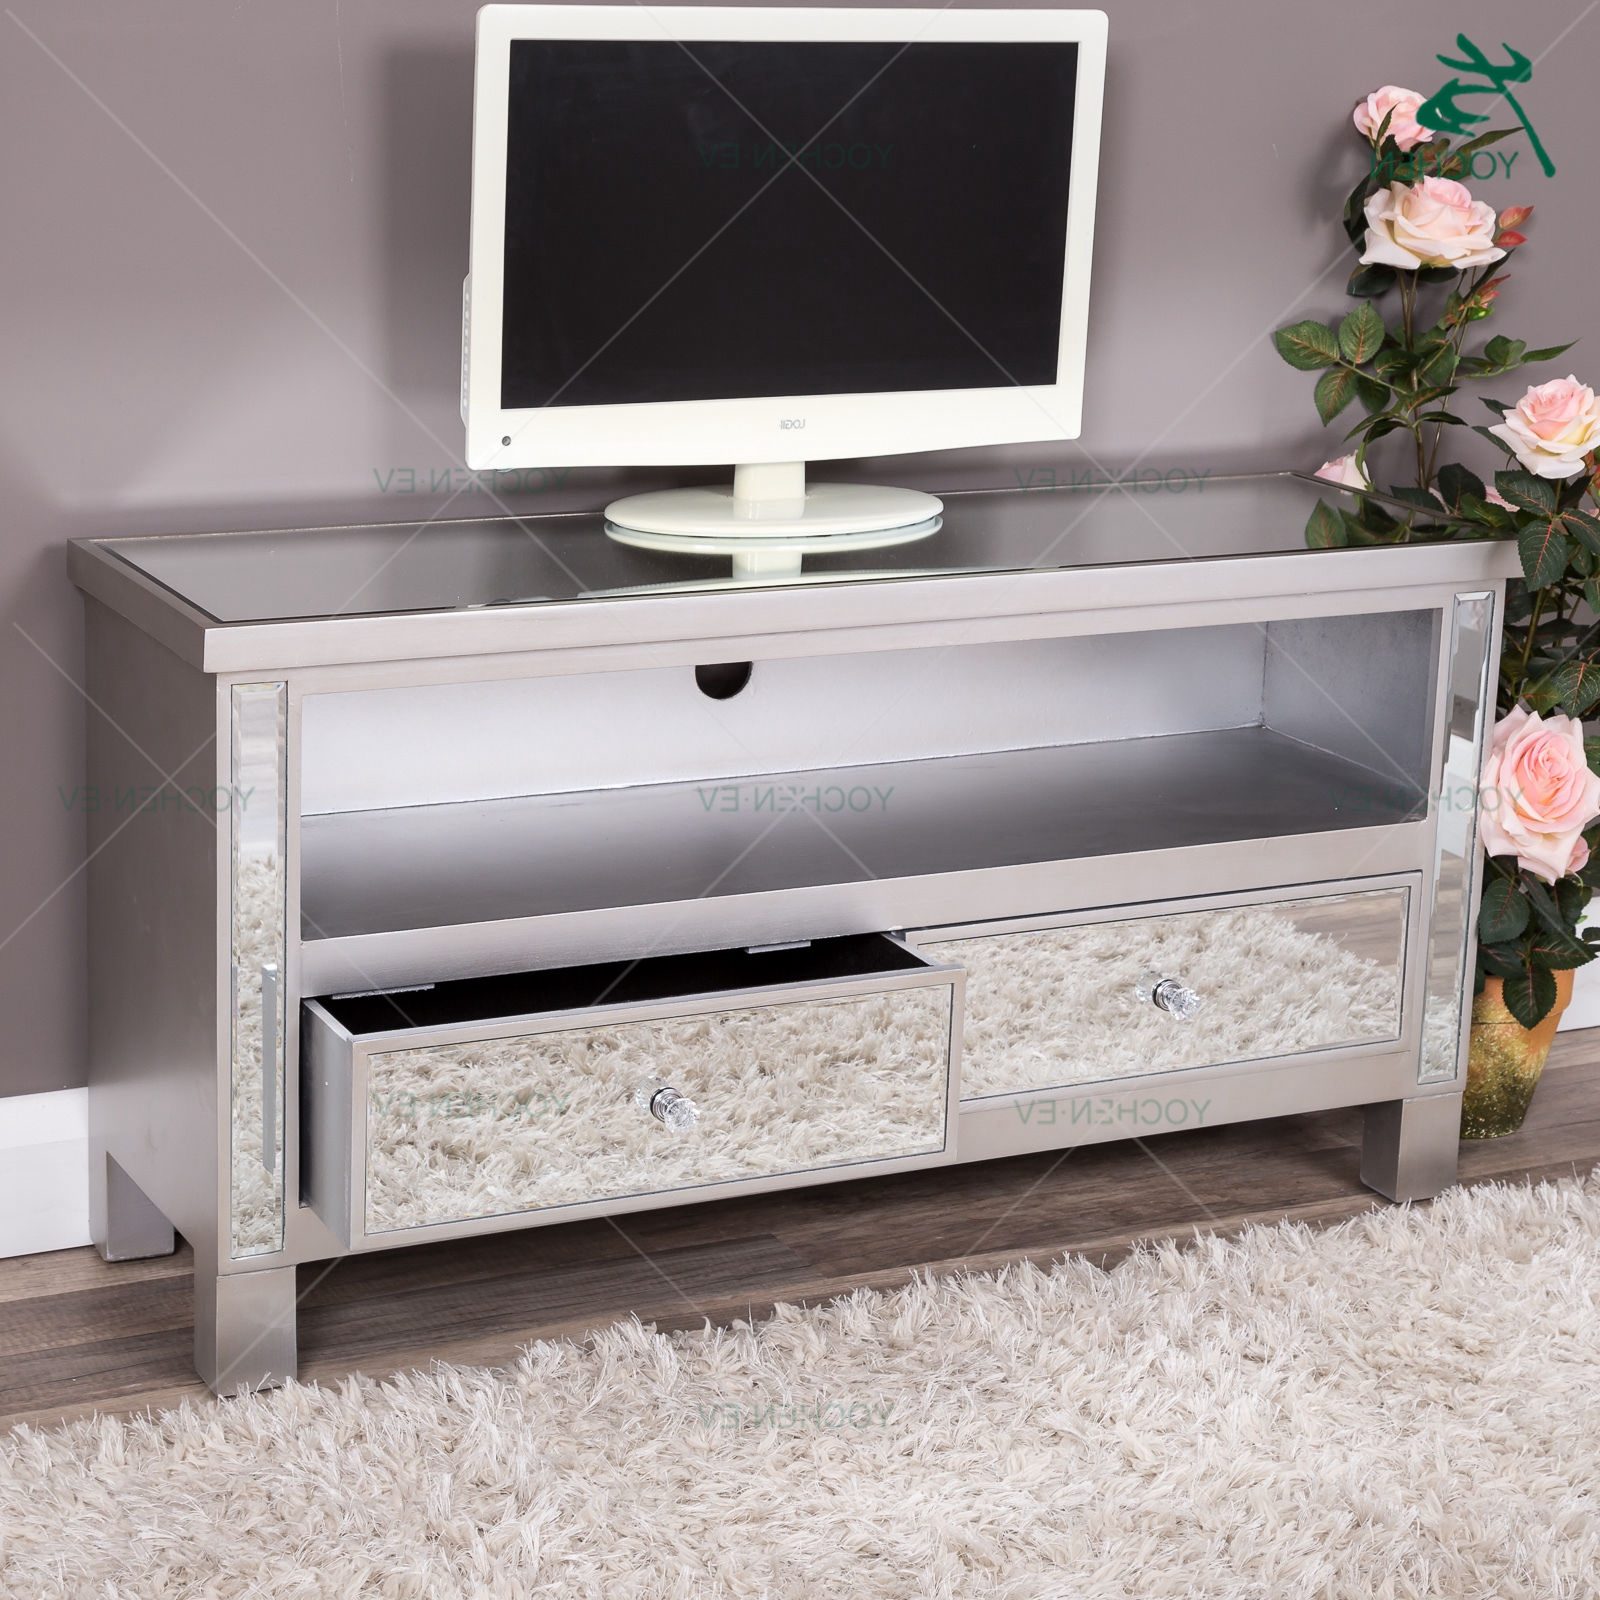 Loren Mirrored Wide Tv Unit Stands Within Most Current Two Drawers Silver Glass Mirrored Tv Stand (View 2 of 10)